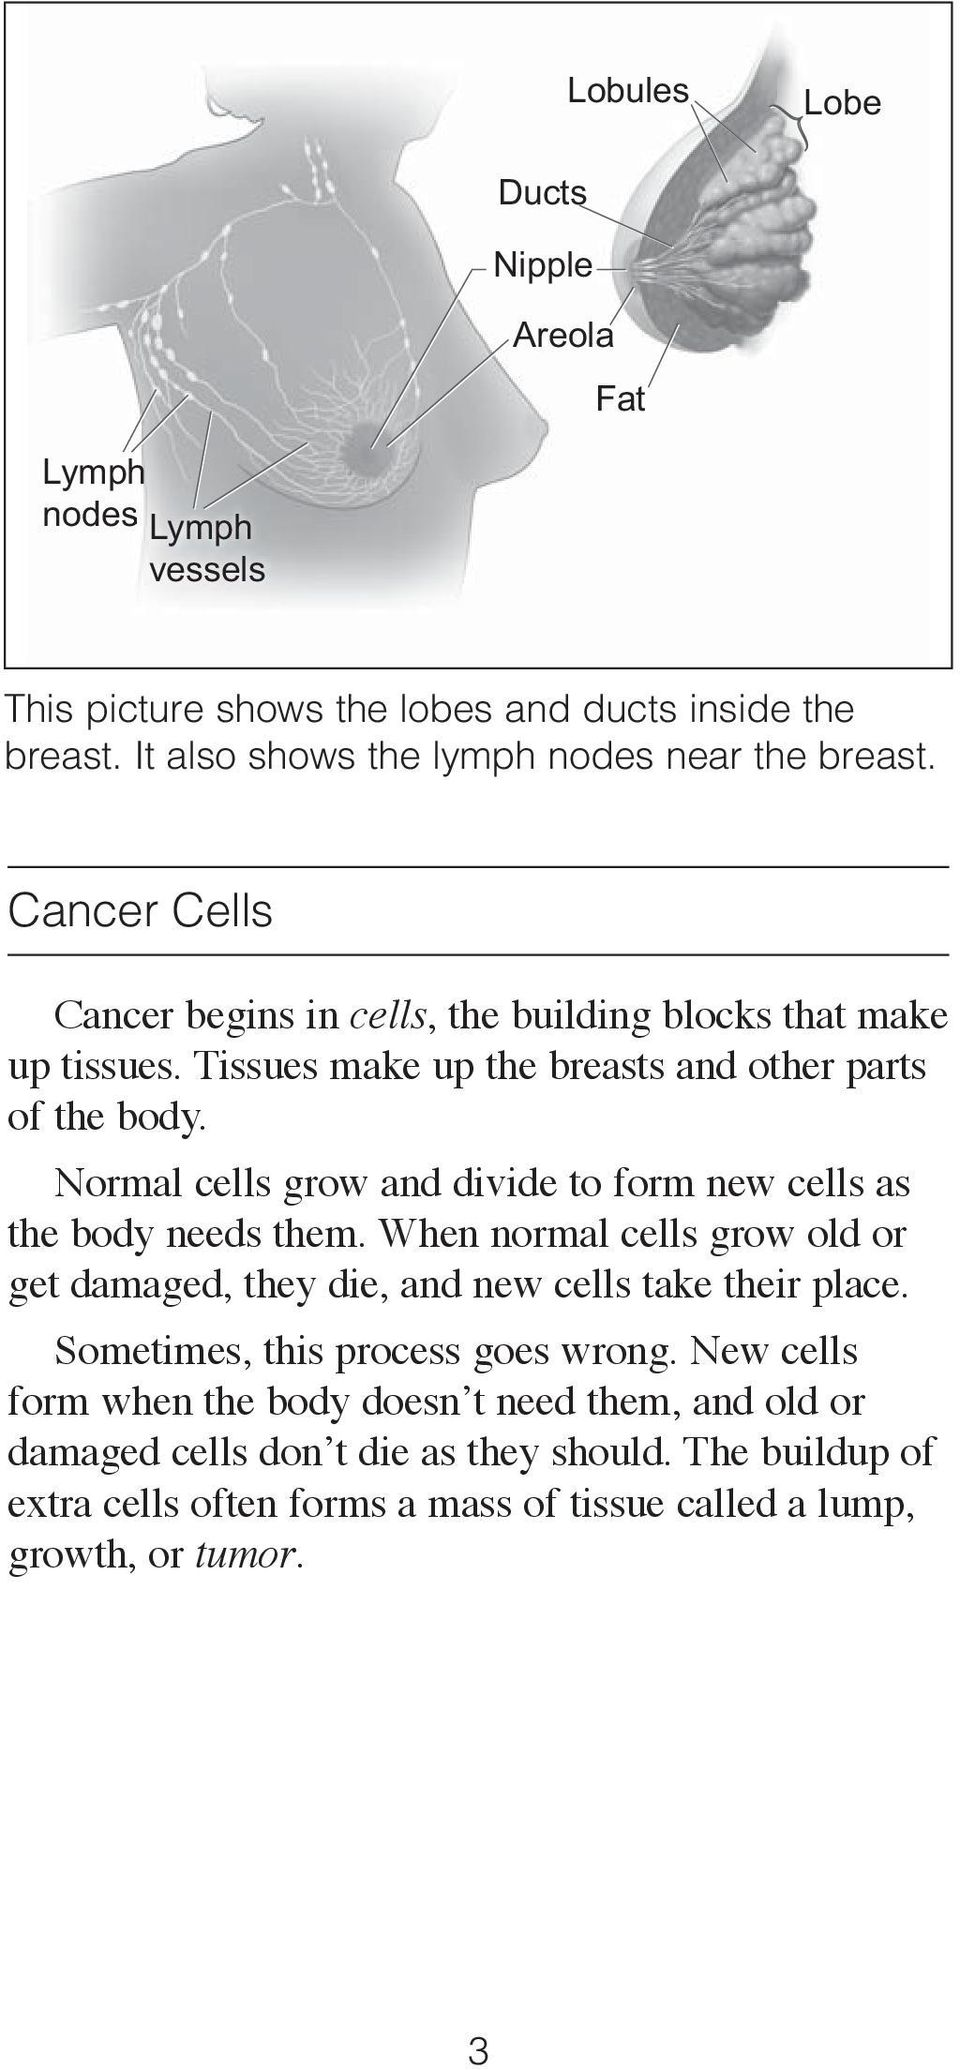 Normal cells grow and divide to form new cells as the body needs them. When normal cells grow old or get damaged, they die, and new cells take their place.